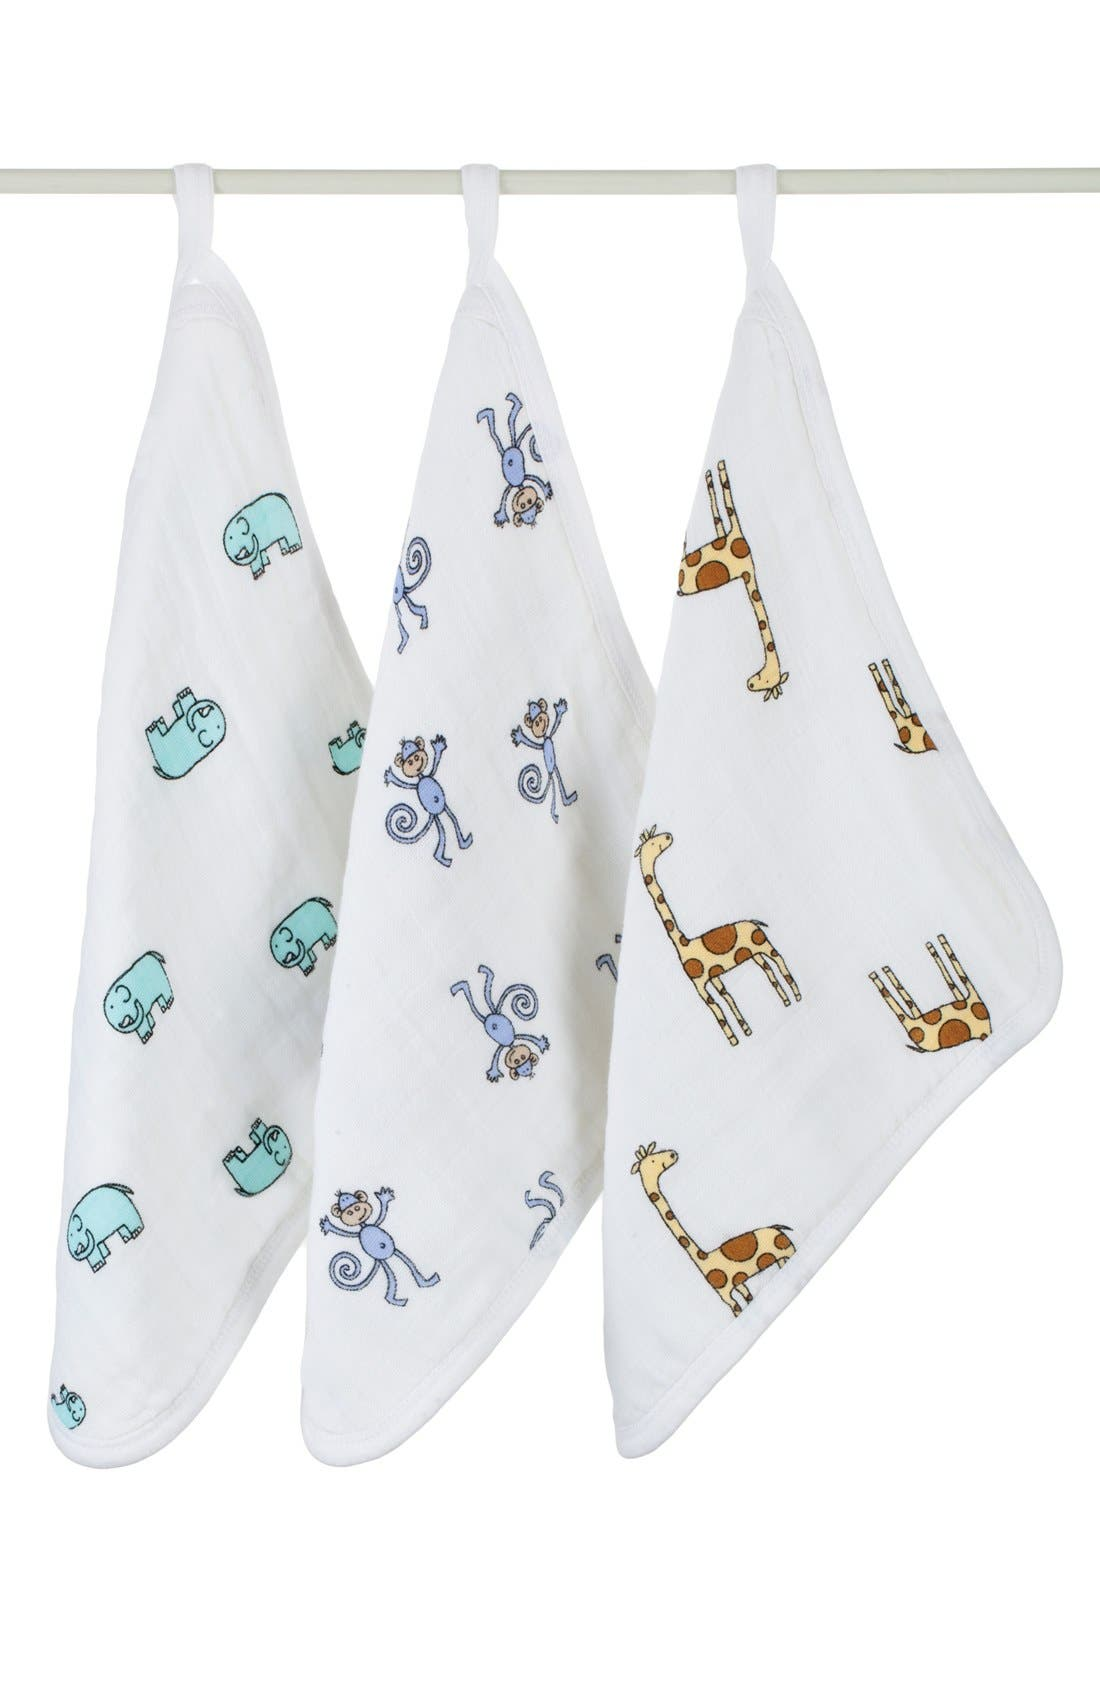 Main Image - aden + anais Classic Washcloth Set (3-Pack)